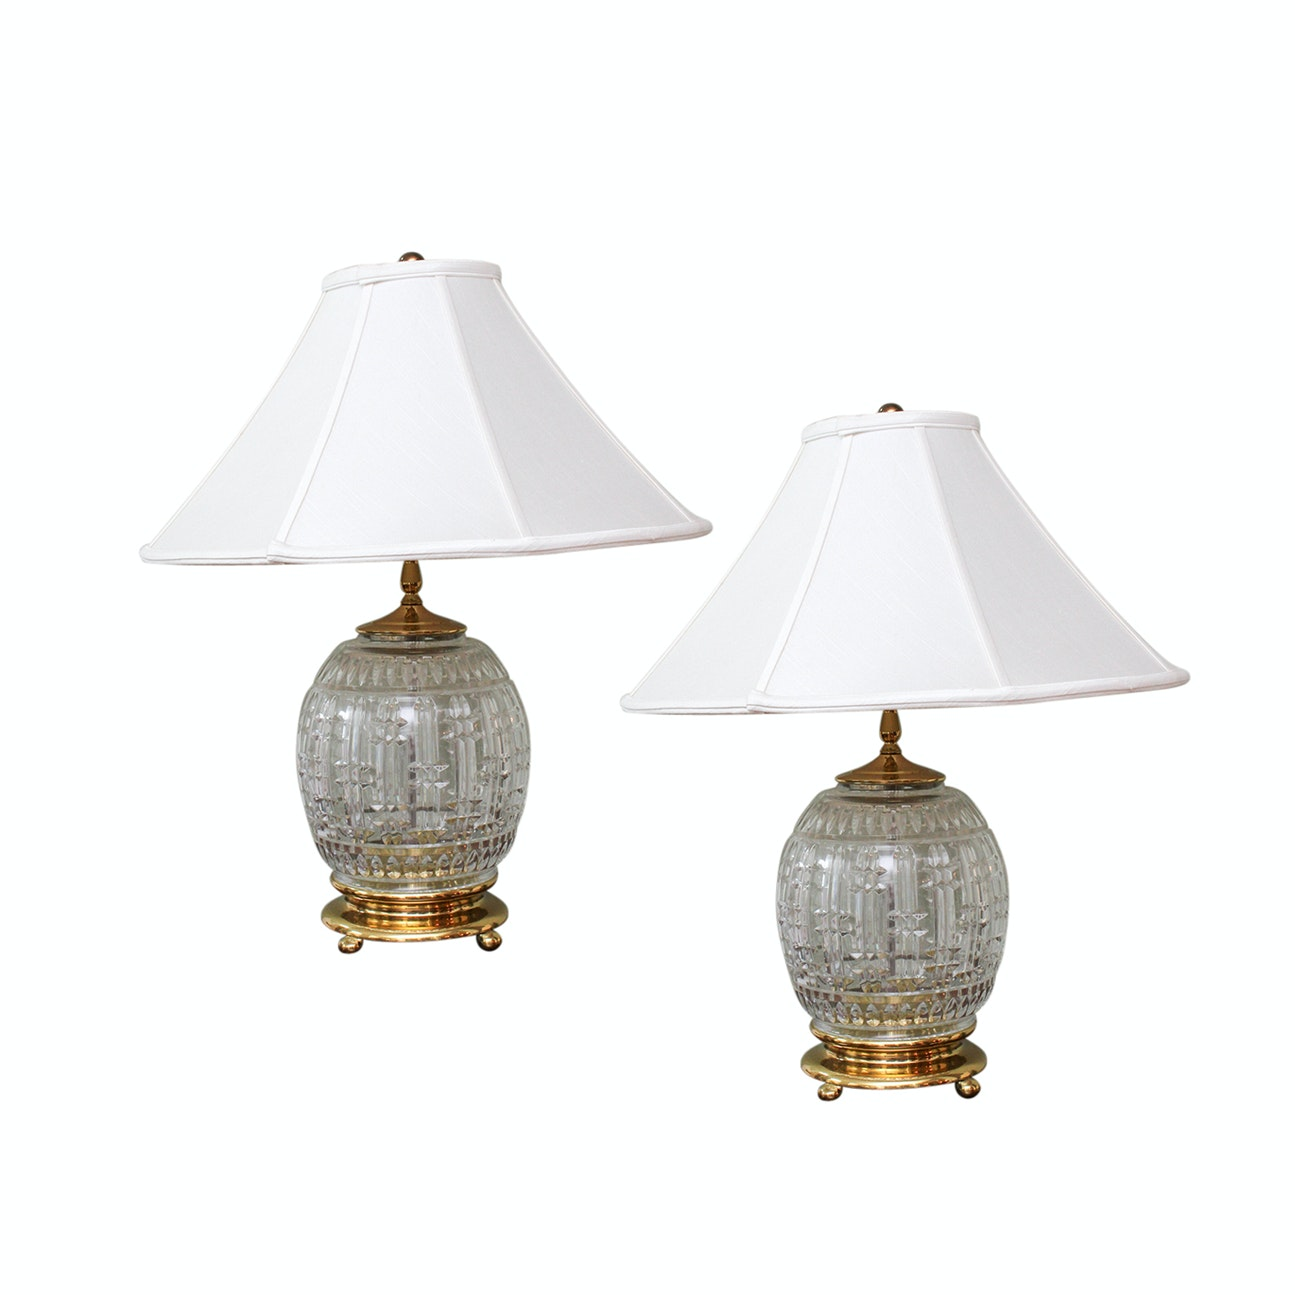 Waterford Crystal 3-Way Table Lamps with Fabric Pagoda Shades